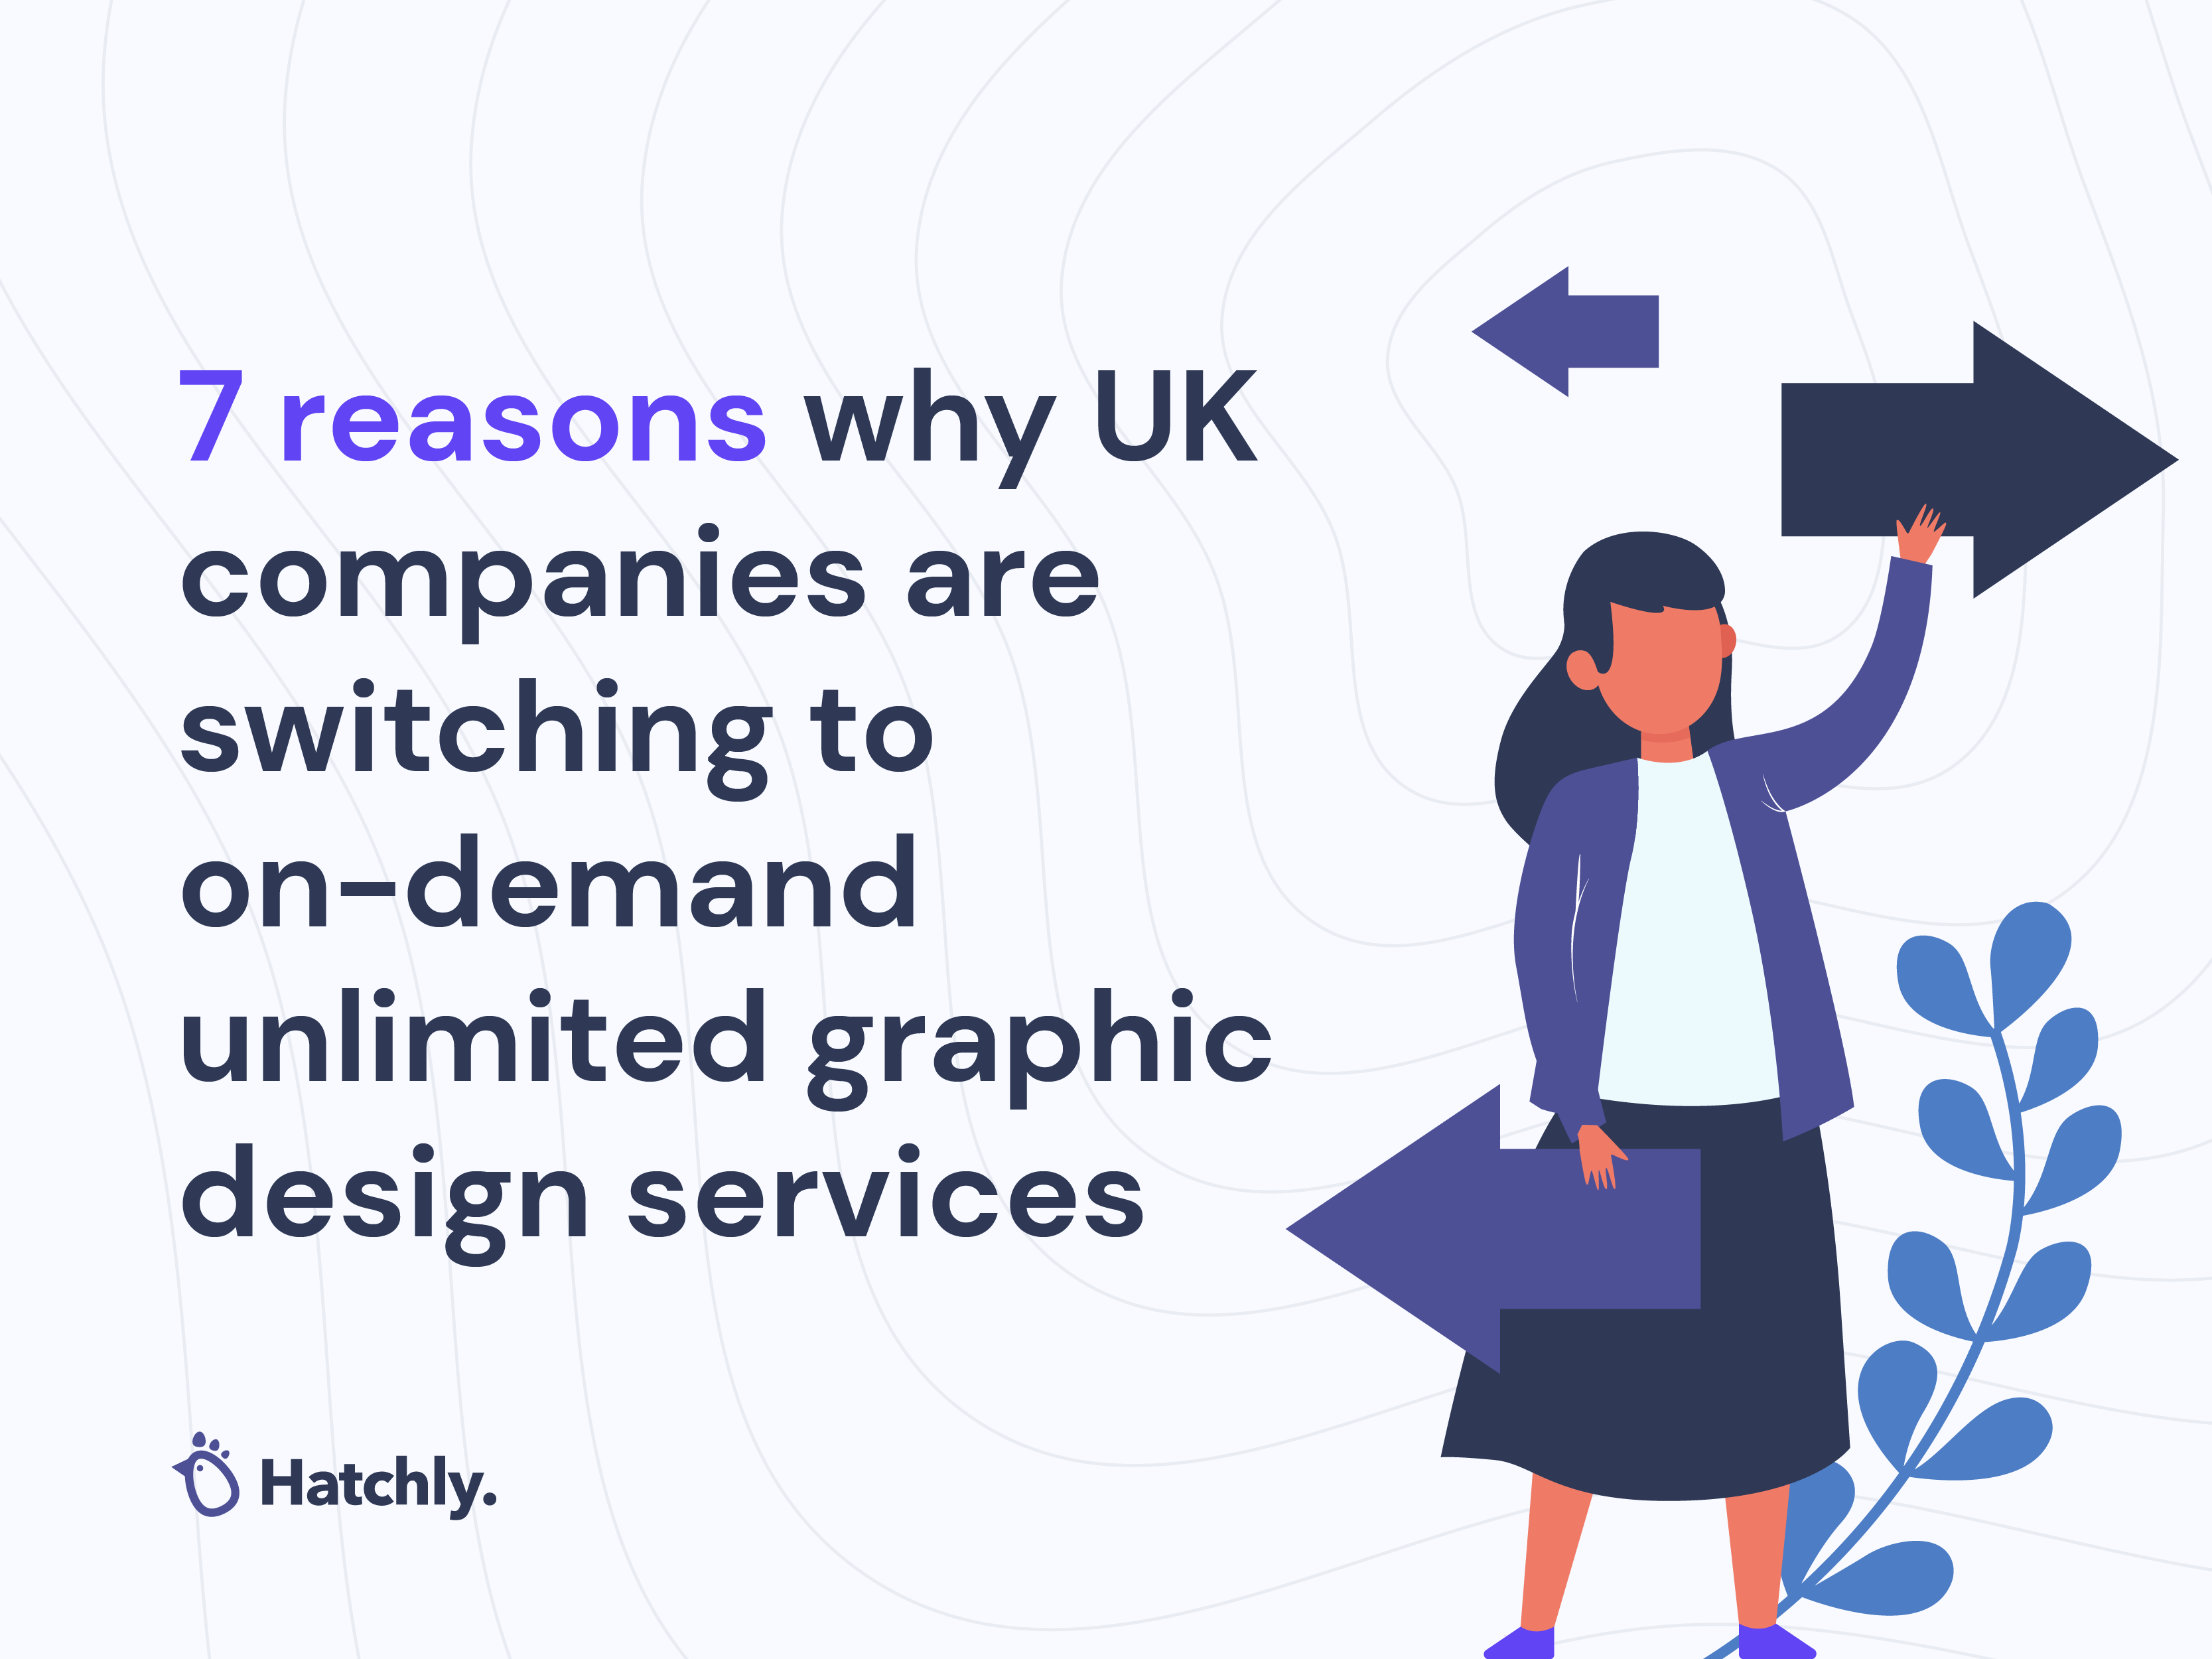 7 reasons why UK companies are switching to on-demand unlimited graphic design services